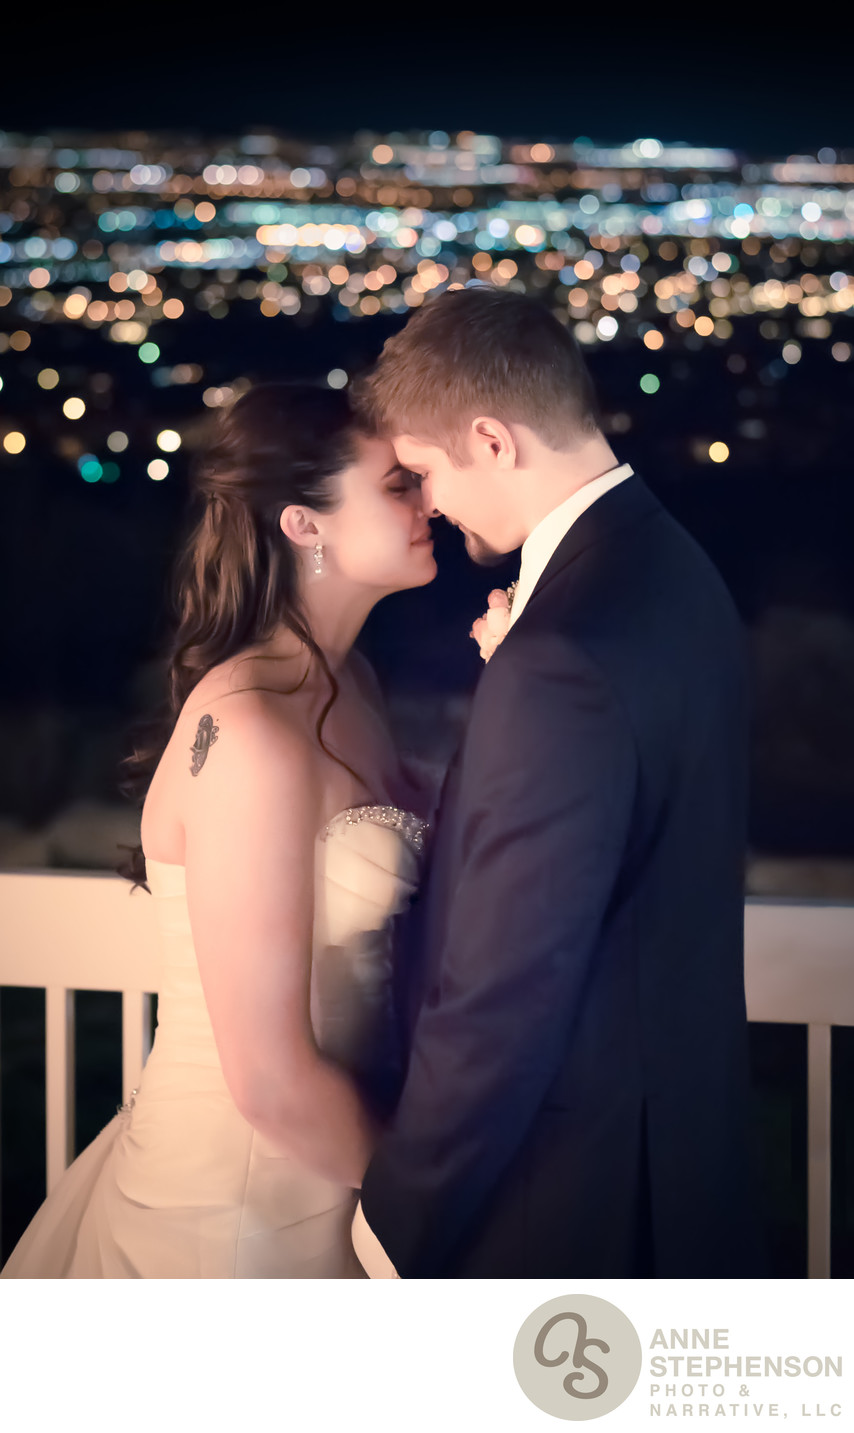 Evening Portrait of Bride and Groom with City Lights